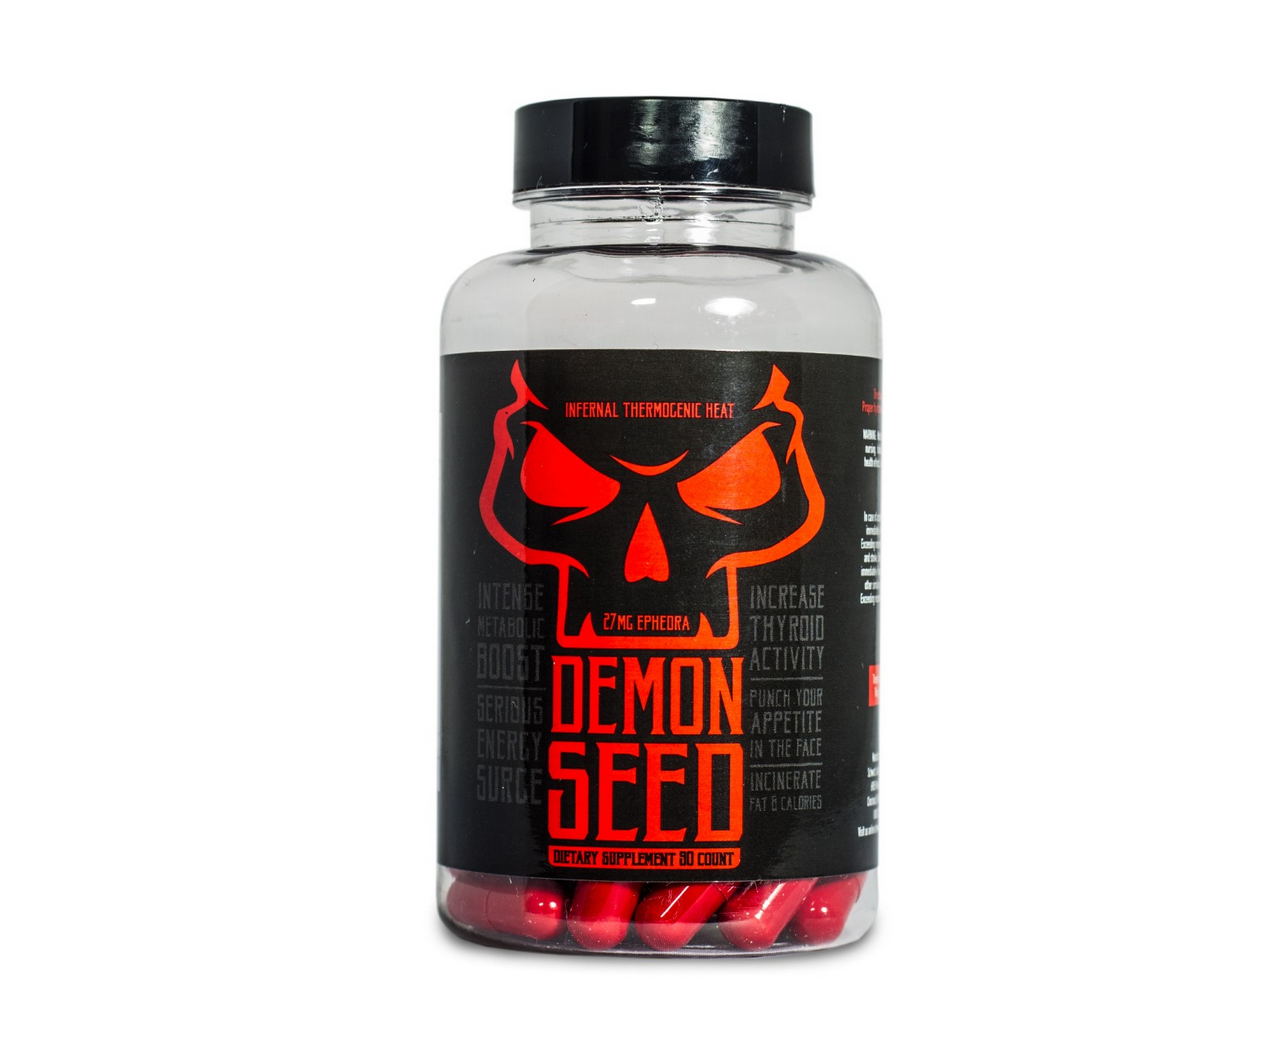 Demon Seed Ephedra Review Fat Burner Pill Is It Safe